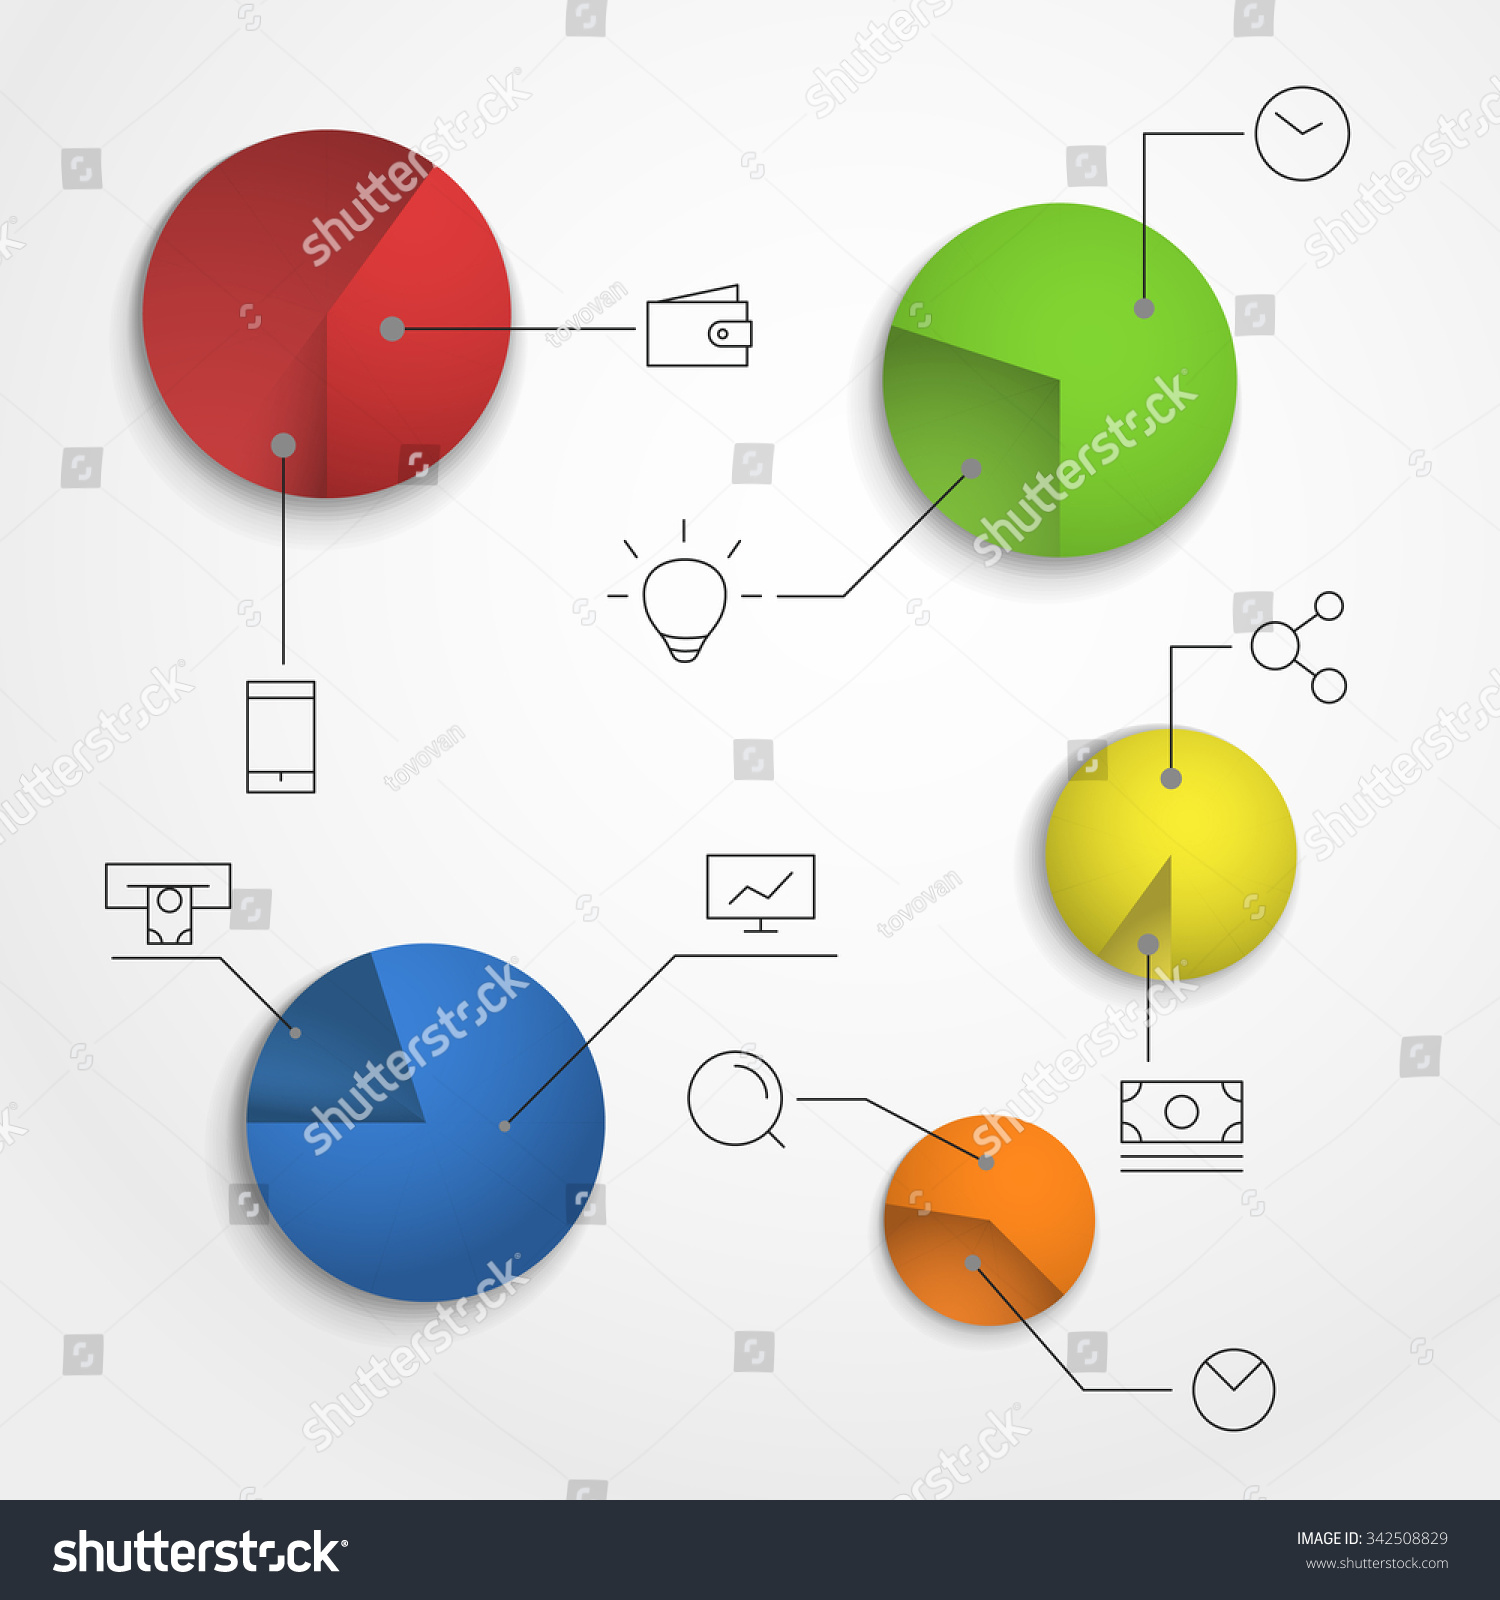 Excel pie chart colors image collections free any chart examples excel pie chart colors choice image free any chart examples excel pie chart colors choice image nvjuhfo Images